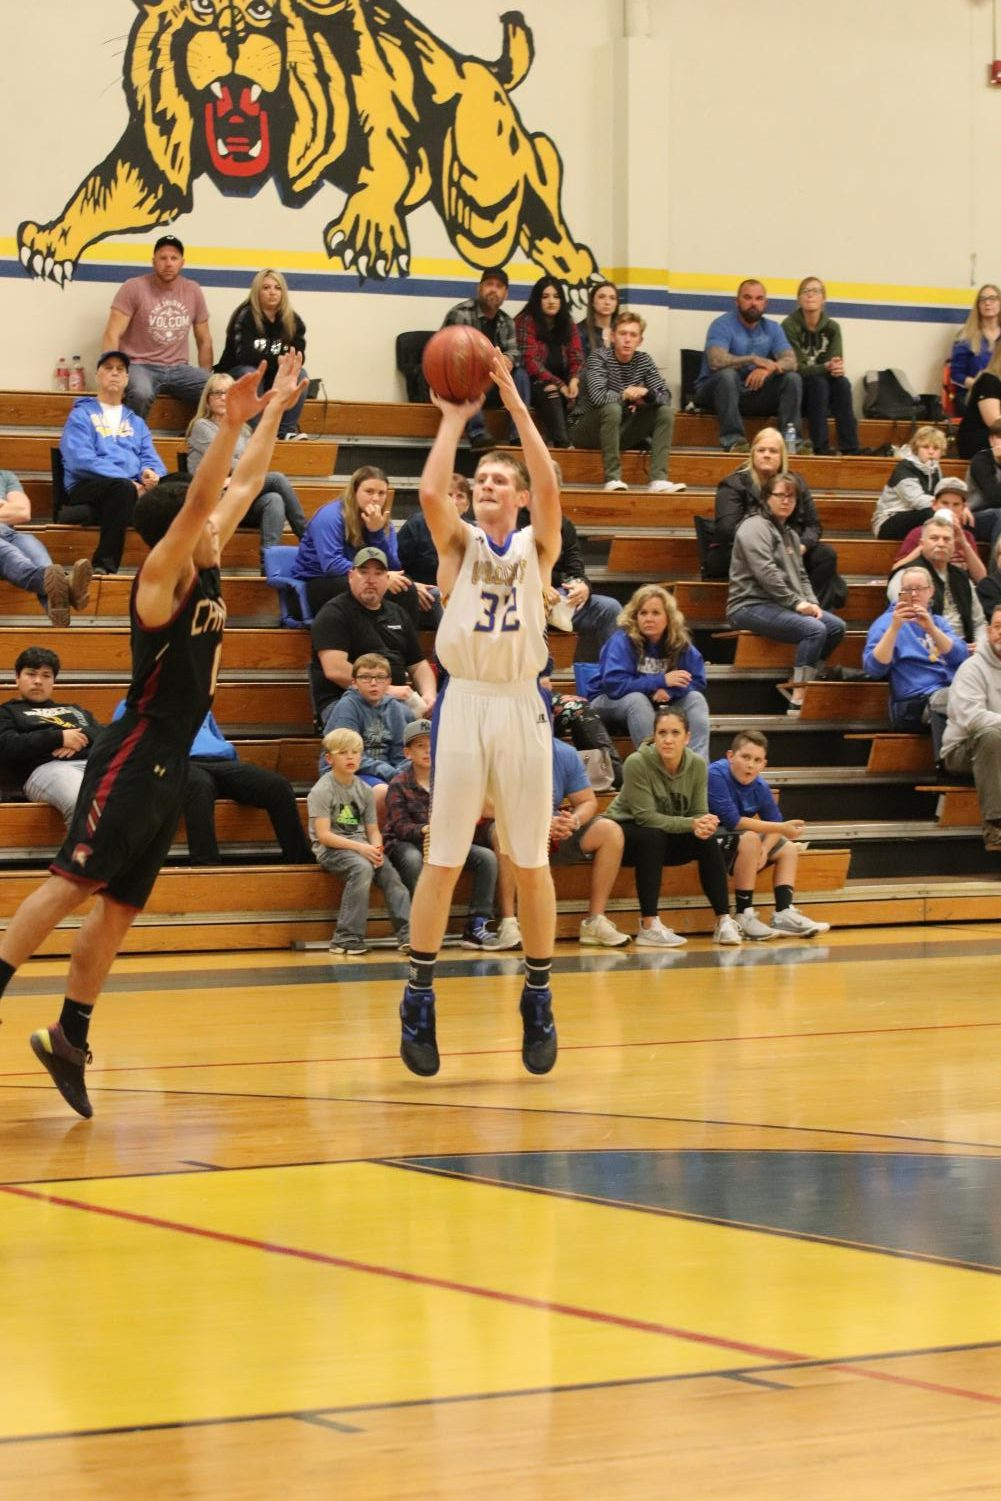 In an intense game against the Titans, Dylan Self hits a three pointer to help lead his team to an important win.